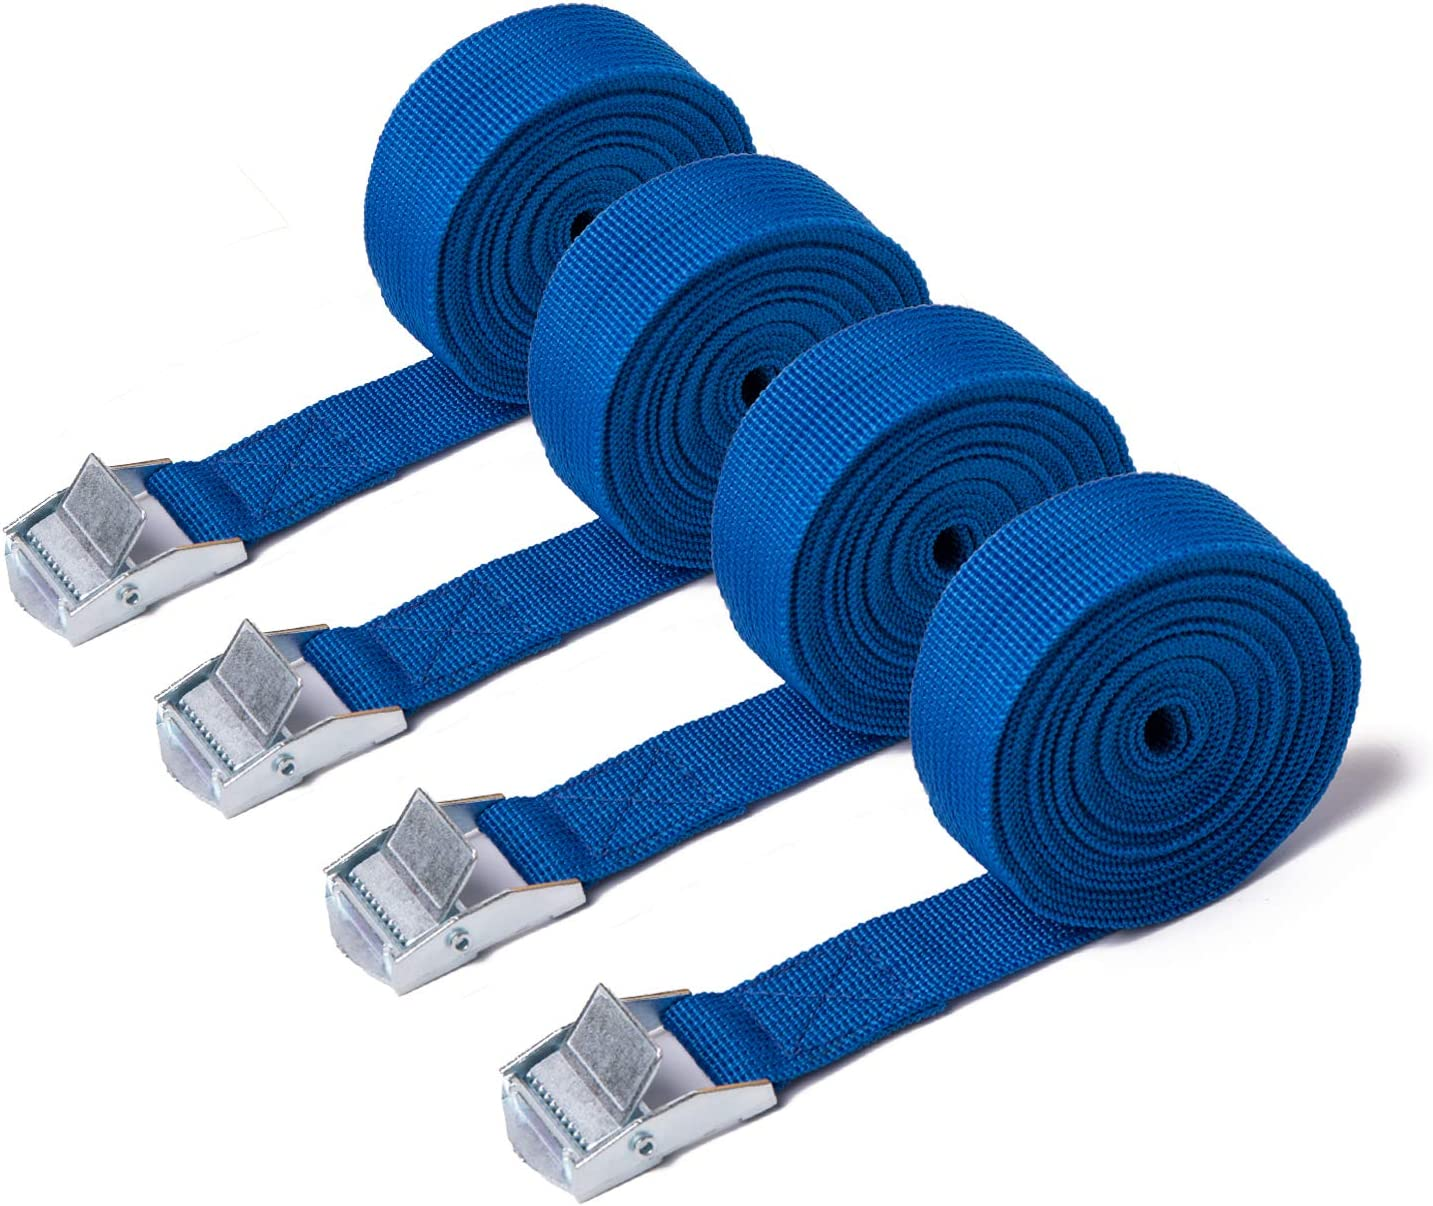 Heavy Duty Tensioning Belts Adjustable Lashing Straps for Motorcycle,Cargo Trailer,Trucks,SUP Kayak,Luggage,3M x 25mm LIVEGREEN 4 Pack Ratchet Tie Down Straps Black